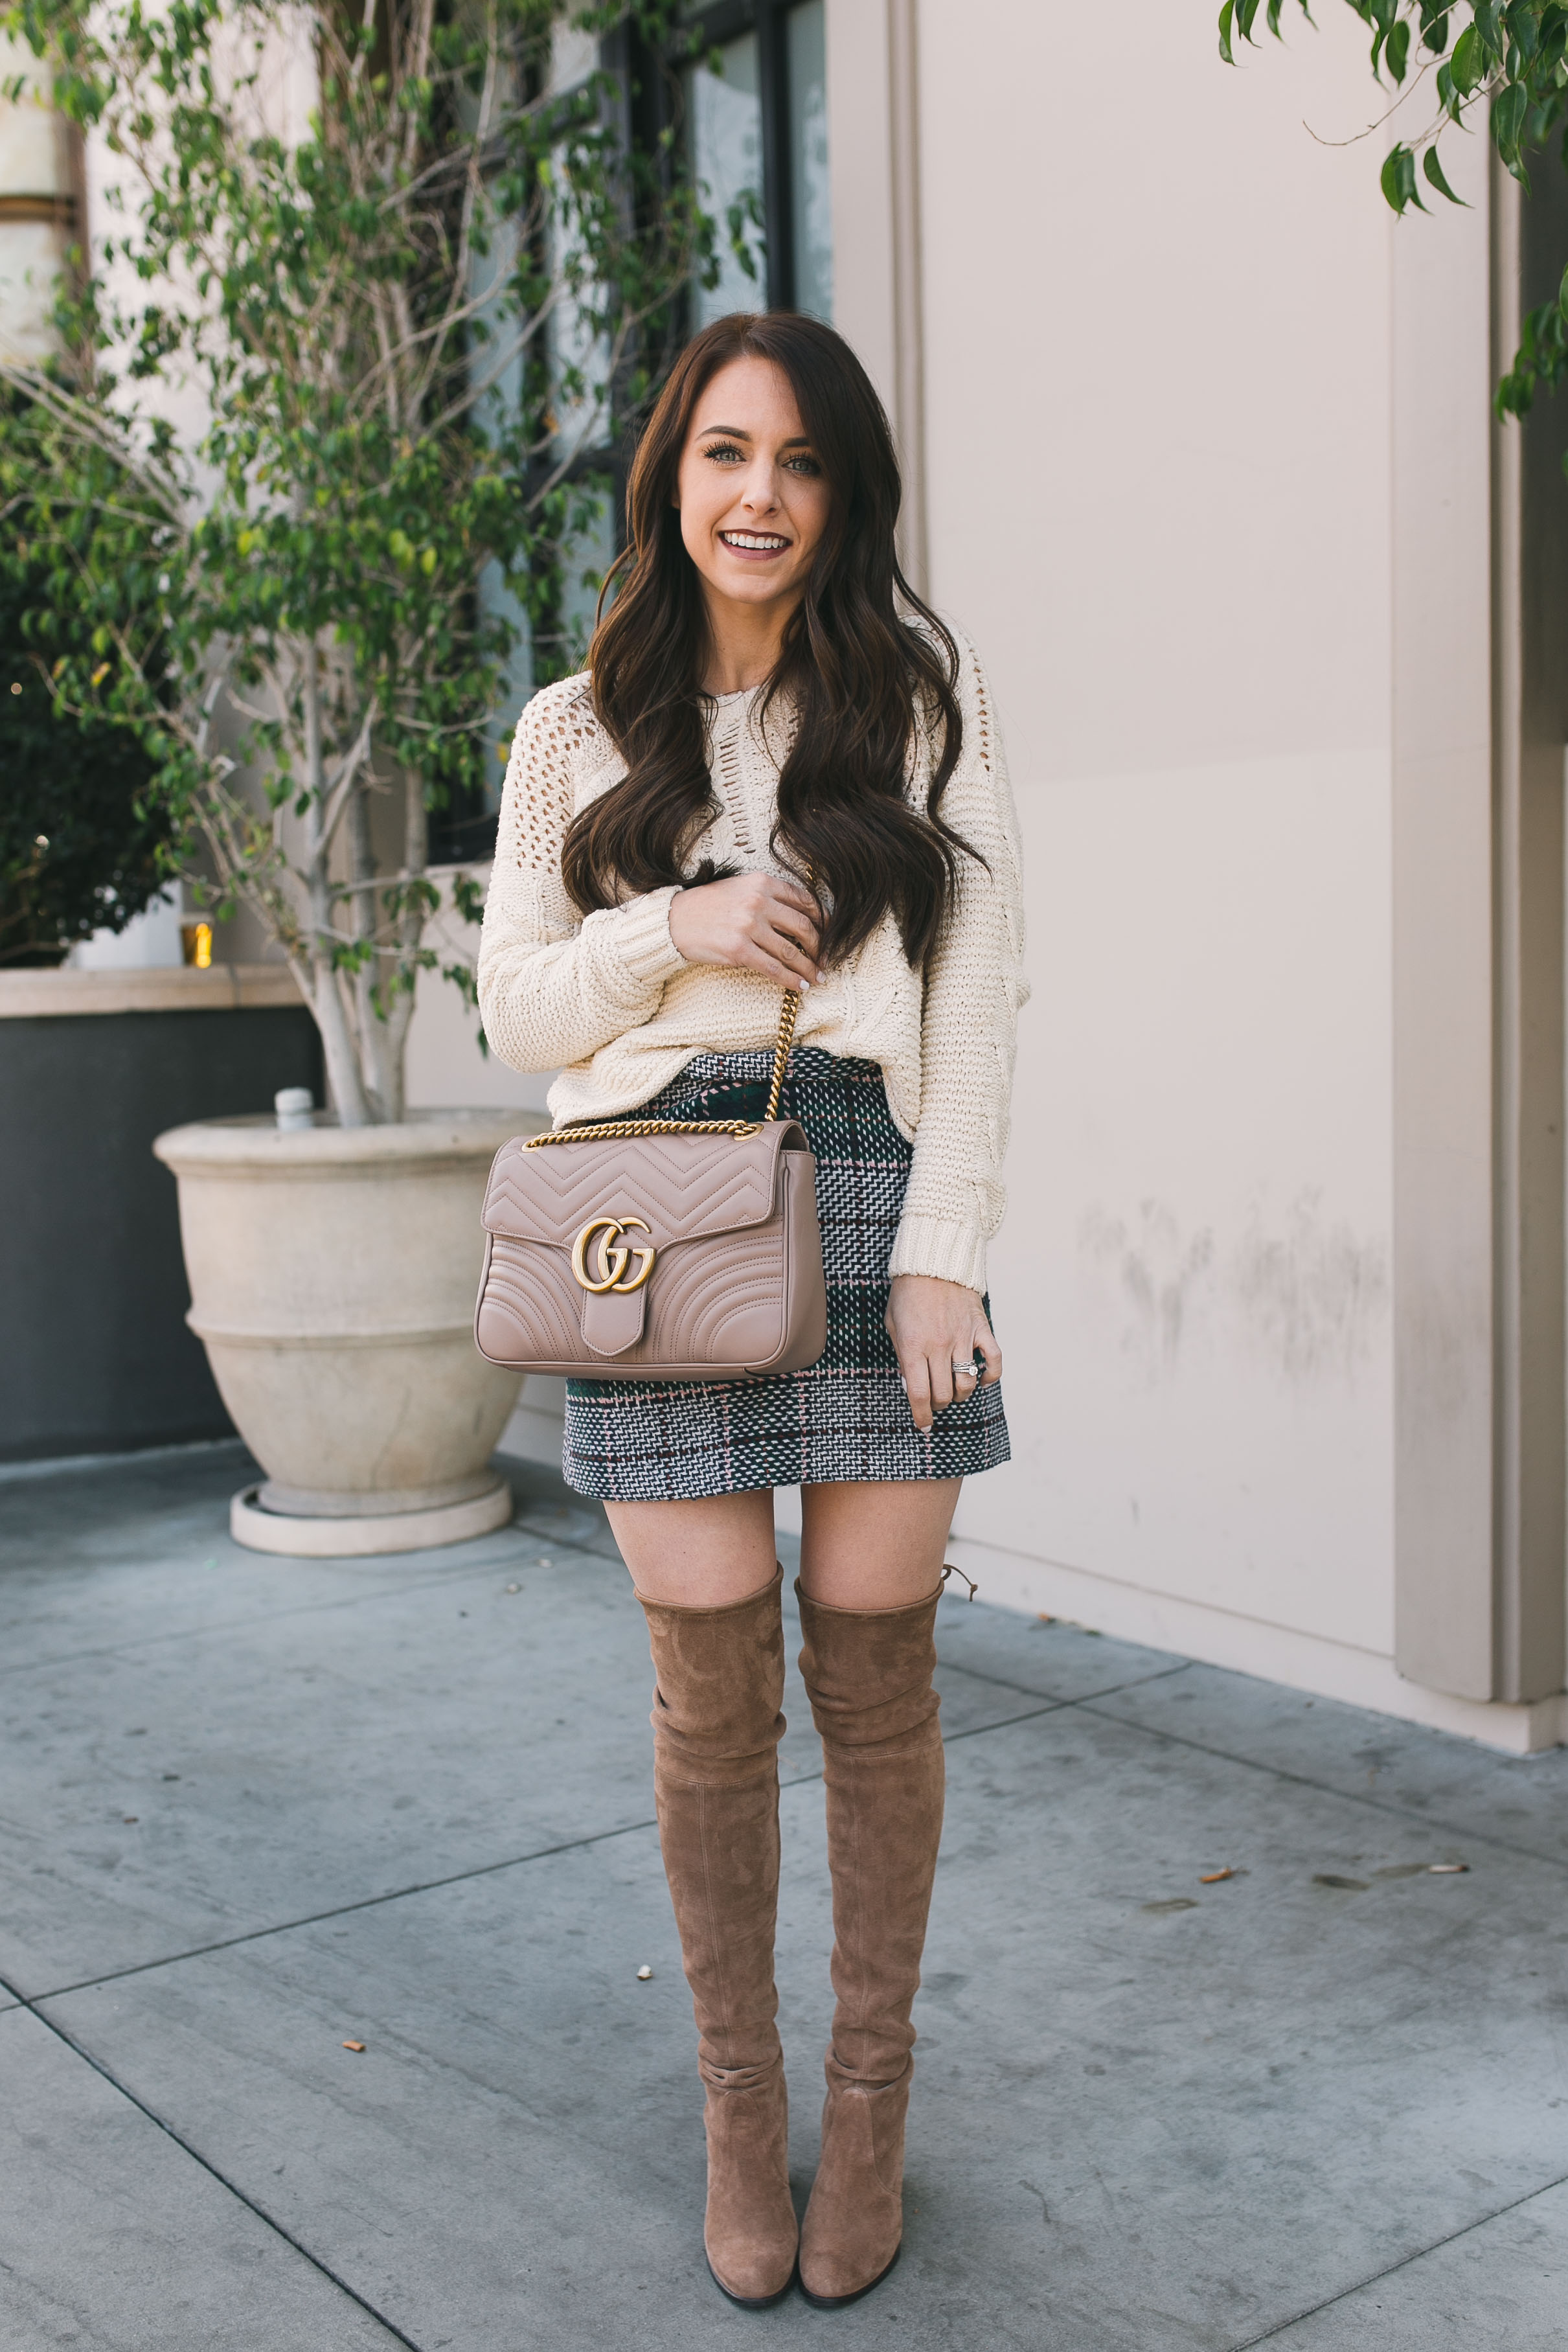 d0f5bc04f4f ... Fashion Blogger Daryl-Ann Denner shares how to wear over-the-knee boots